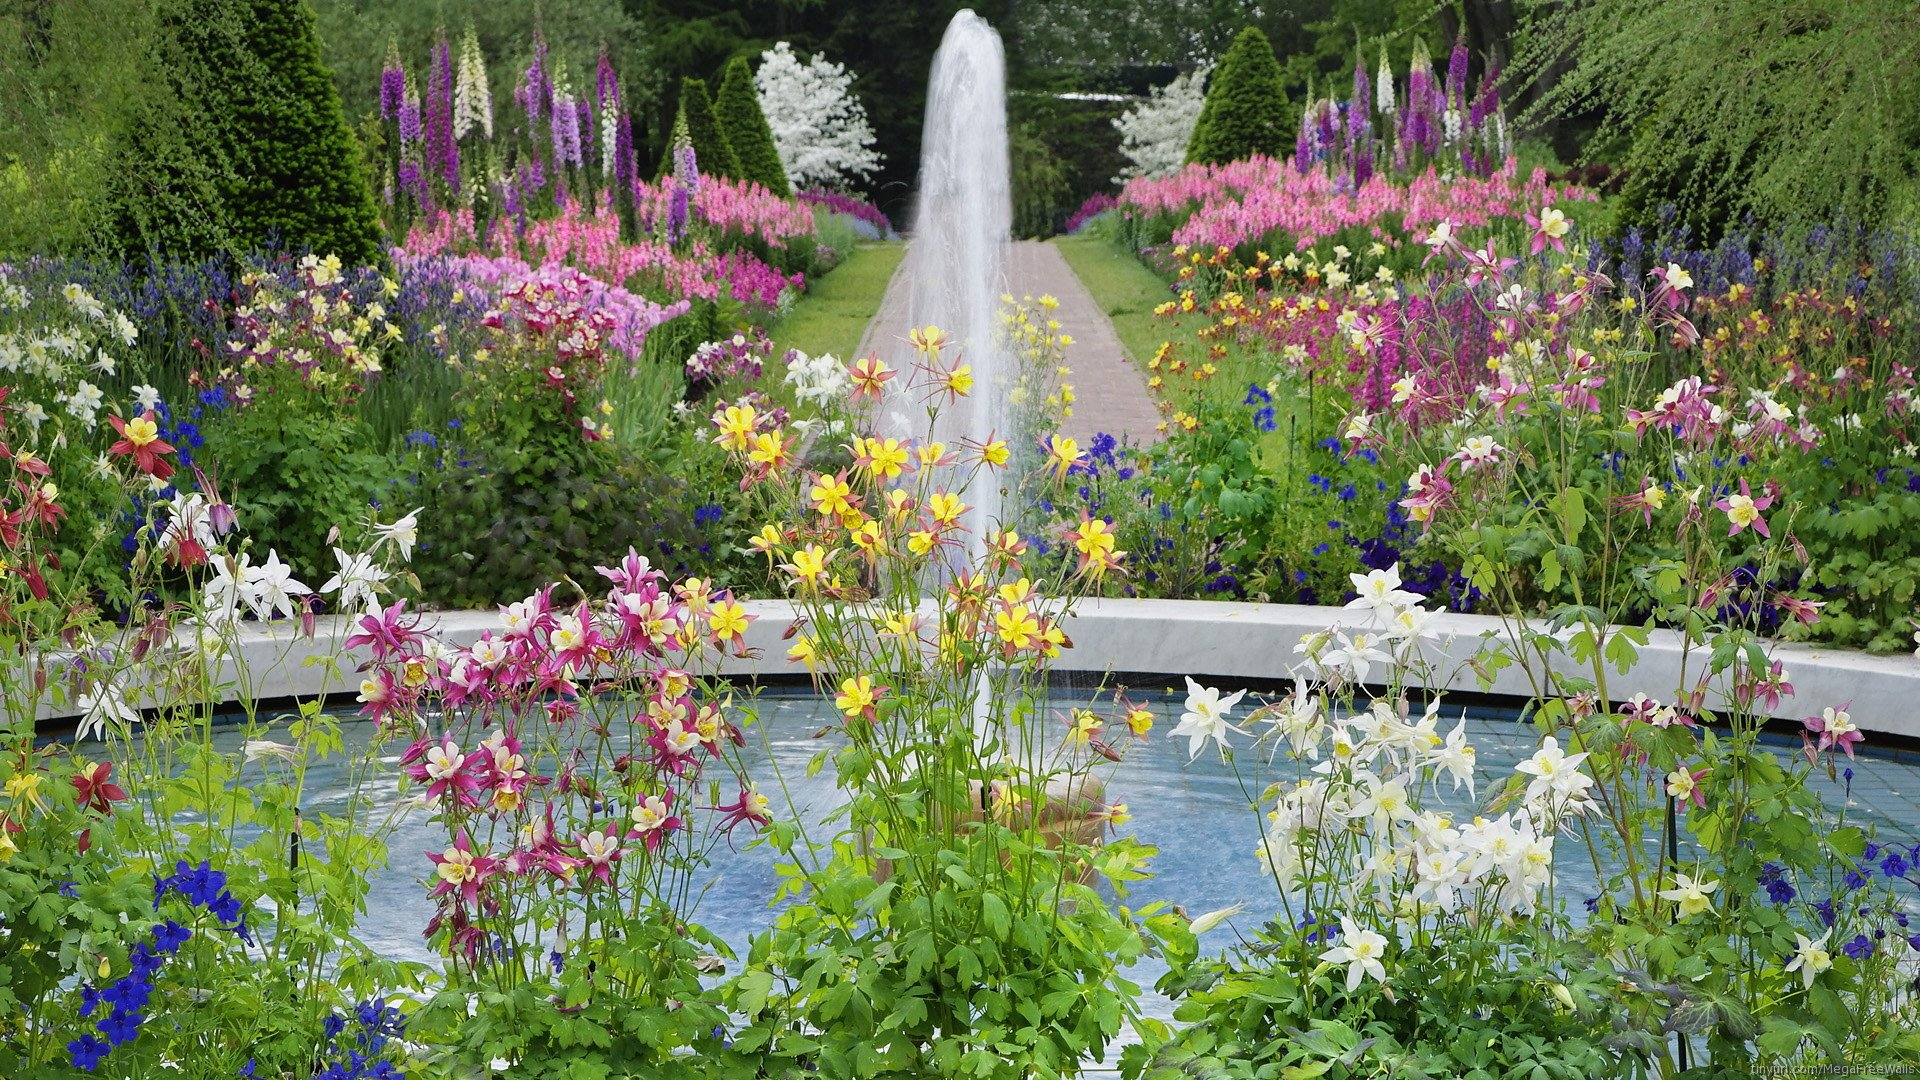 Man Made - Garden  Flower Fountain Wallpaper